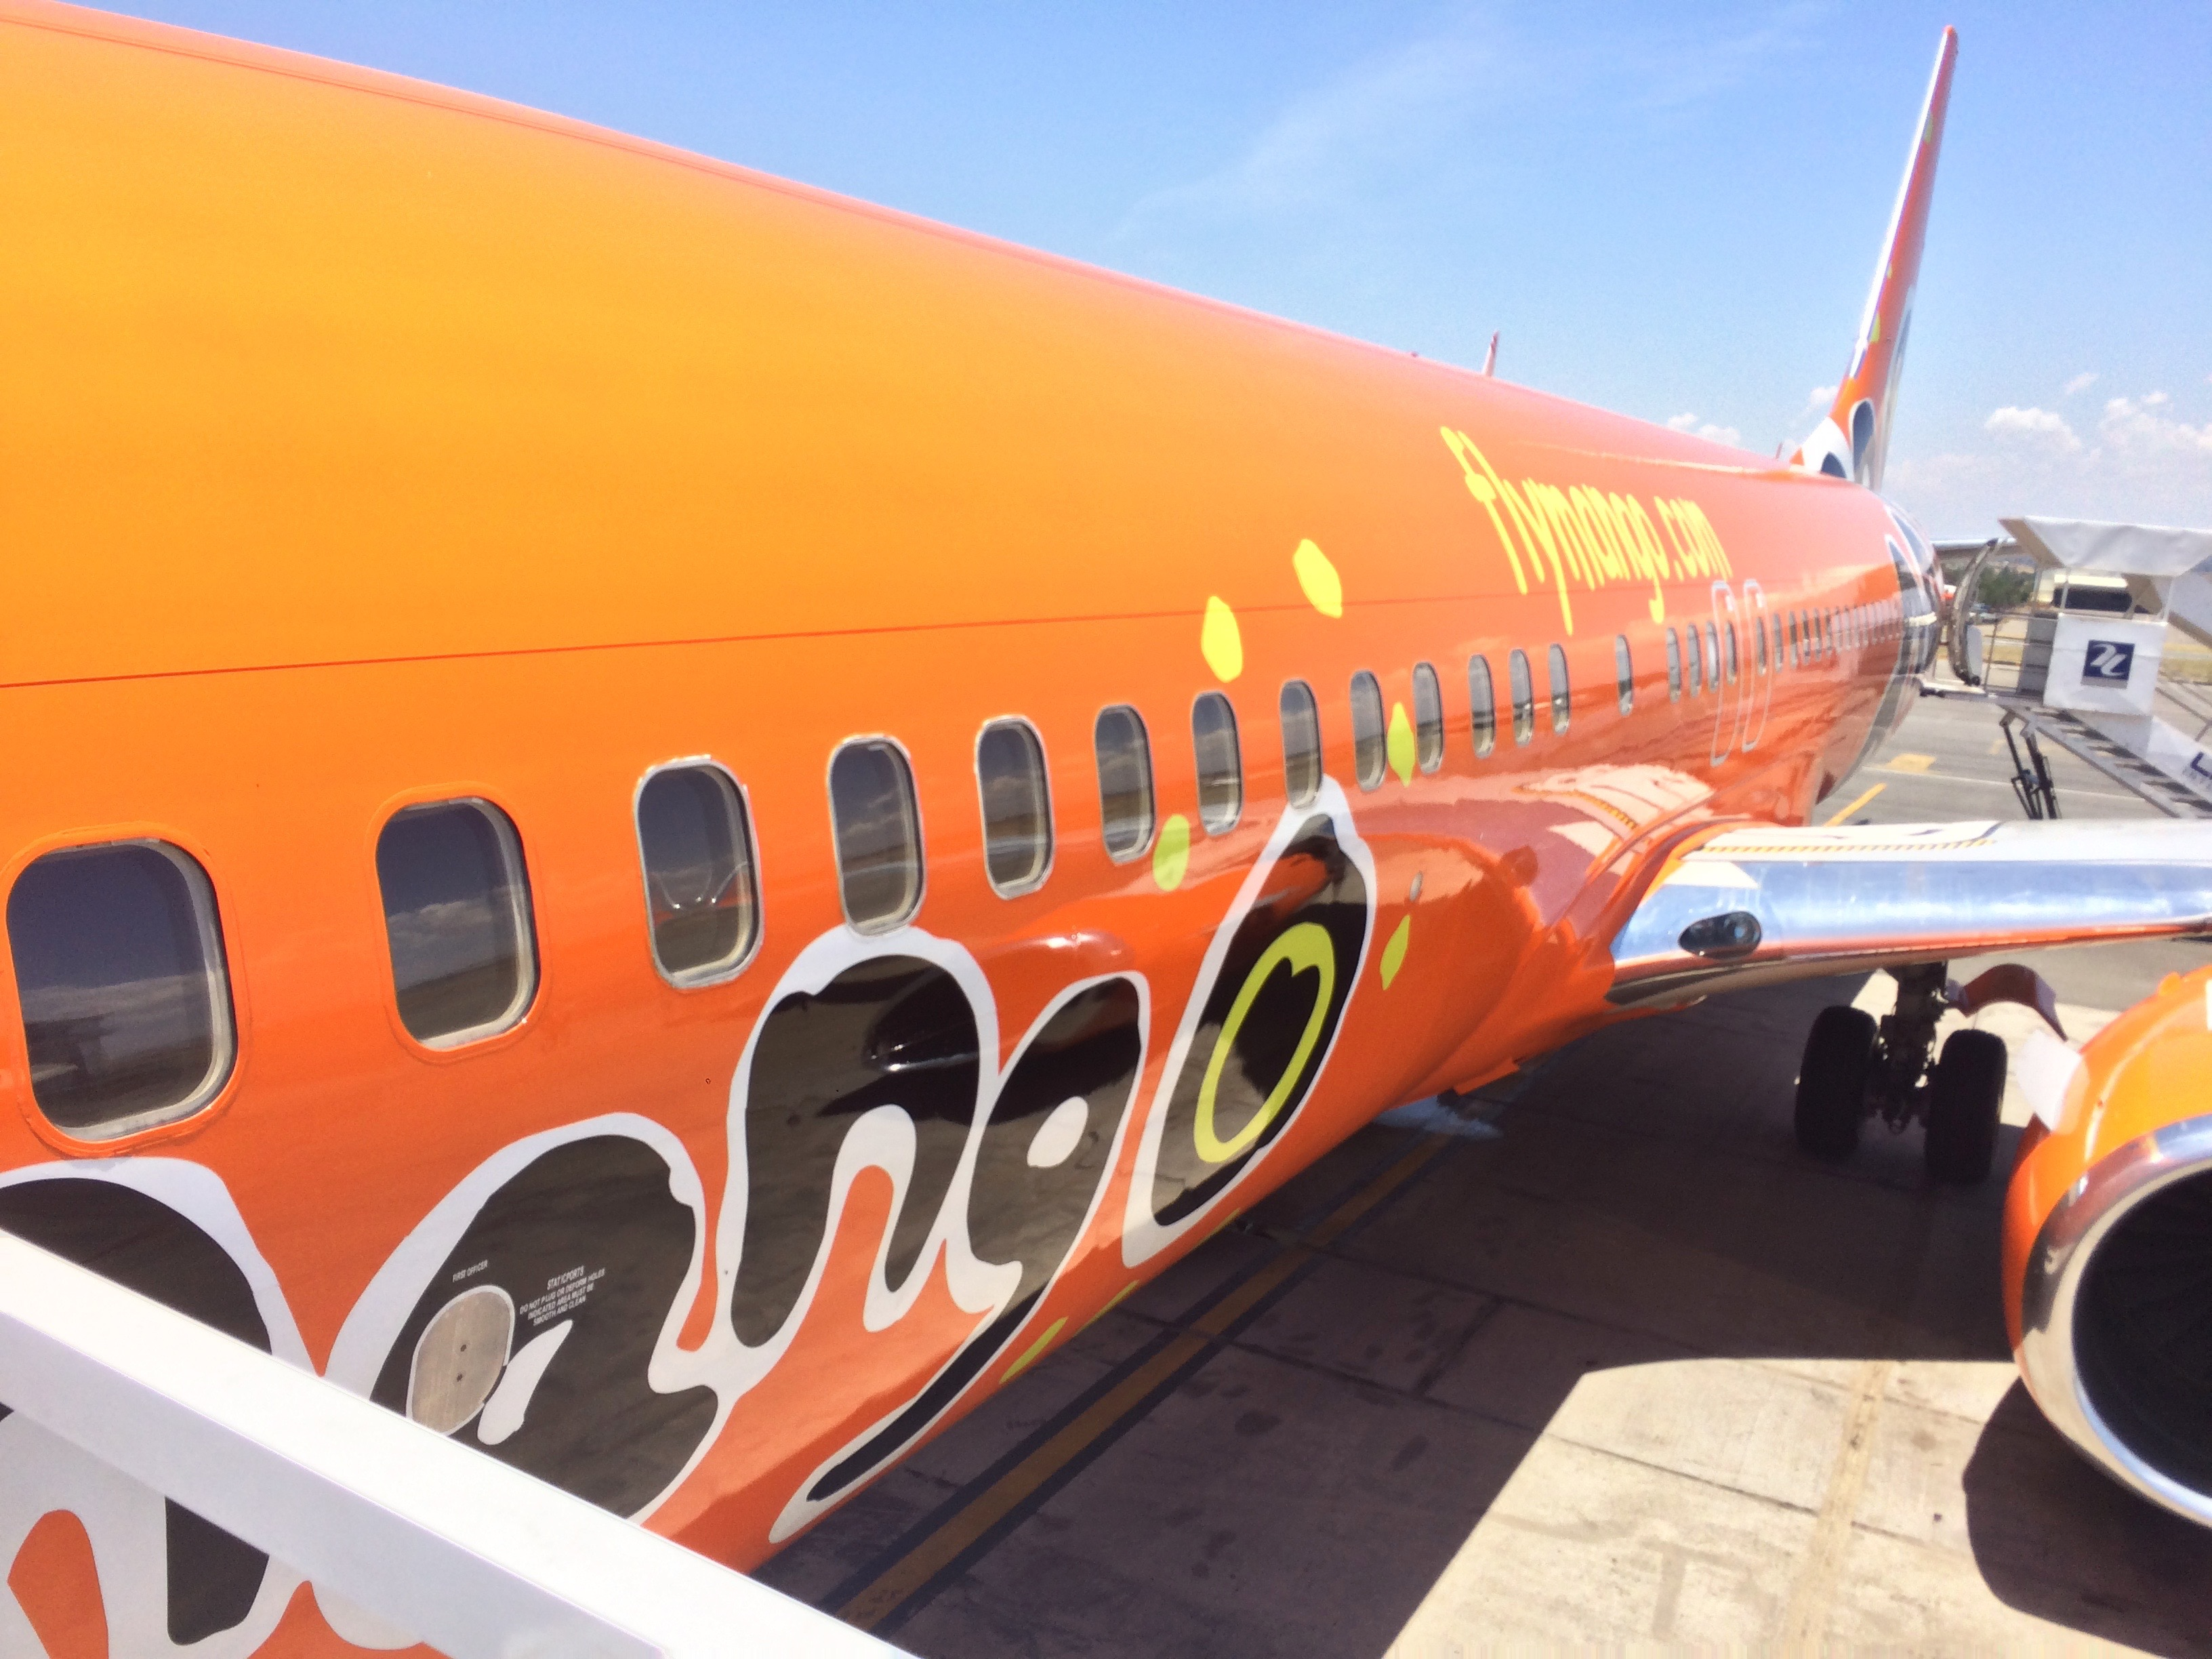 flying to cape town with mango airlines!